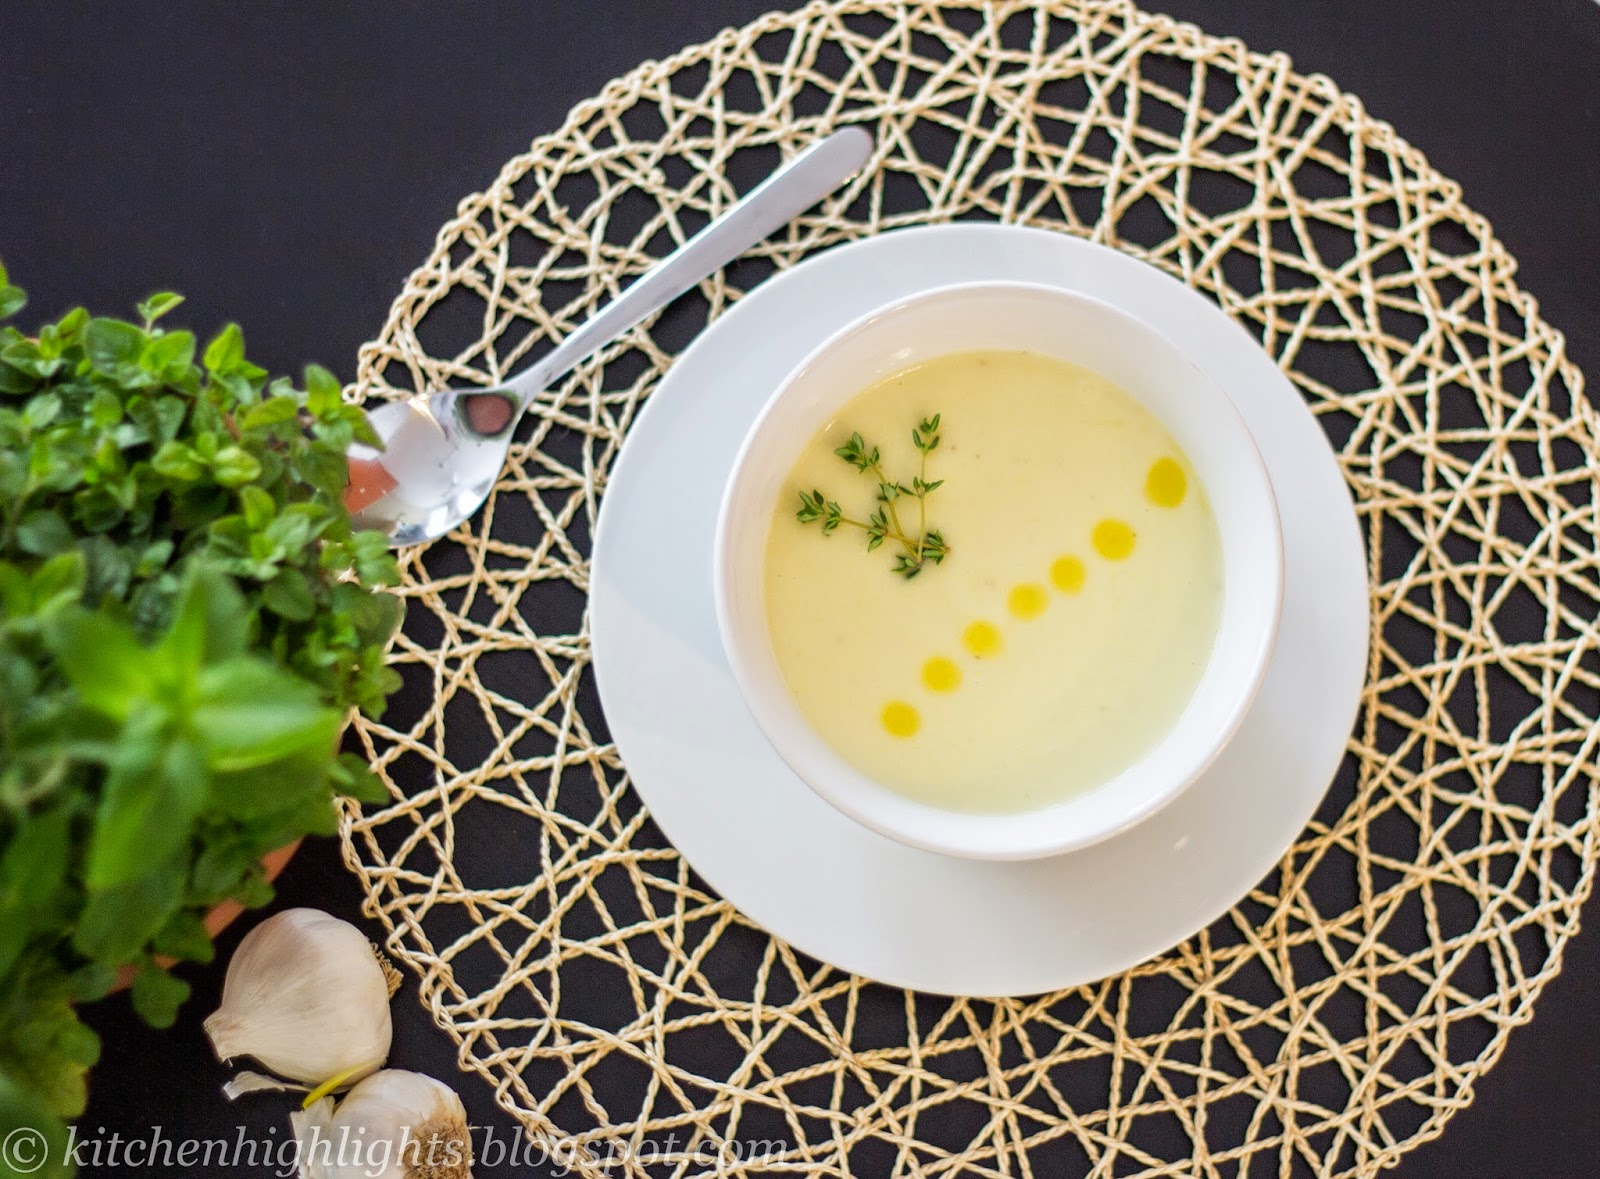 Knoblauchcremesuppe, cream of garlic soup is one of the most famous dishes in Austria